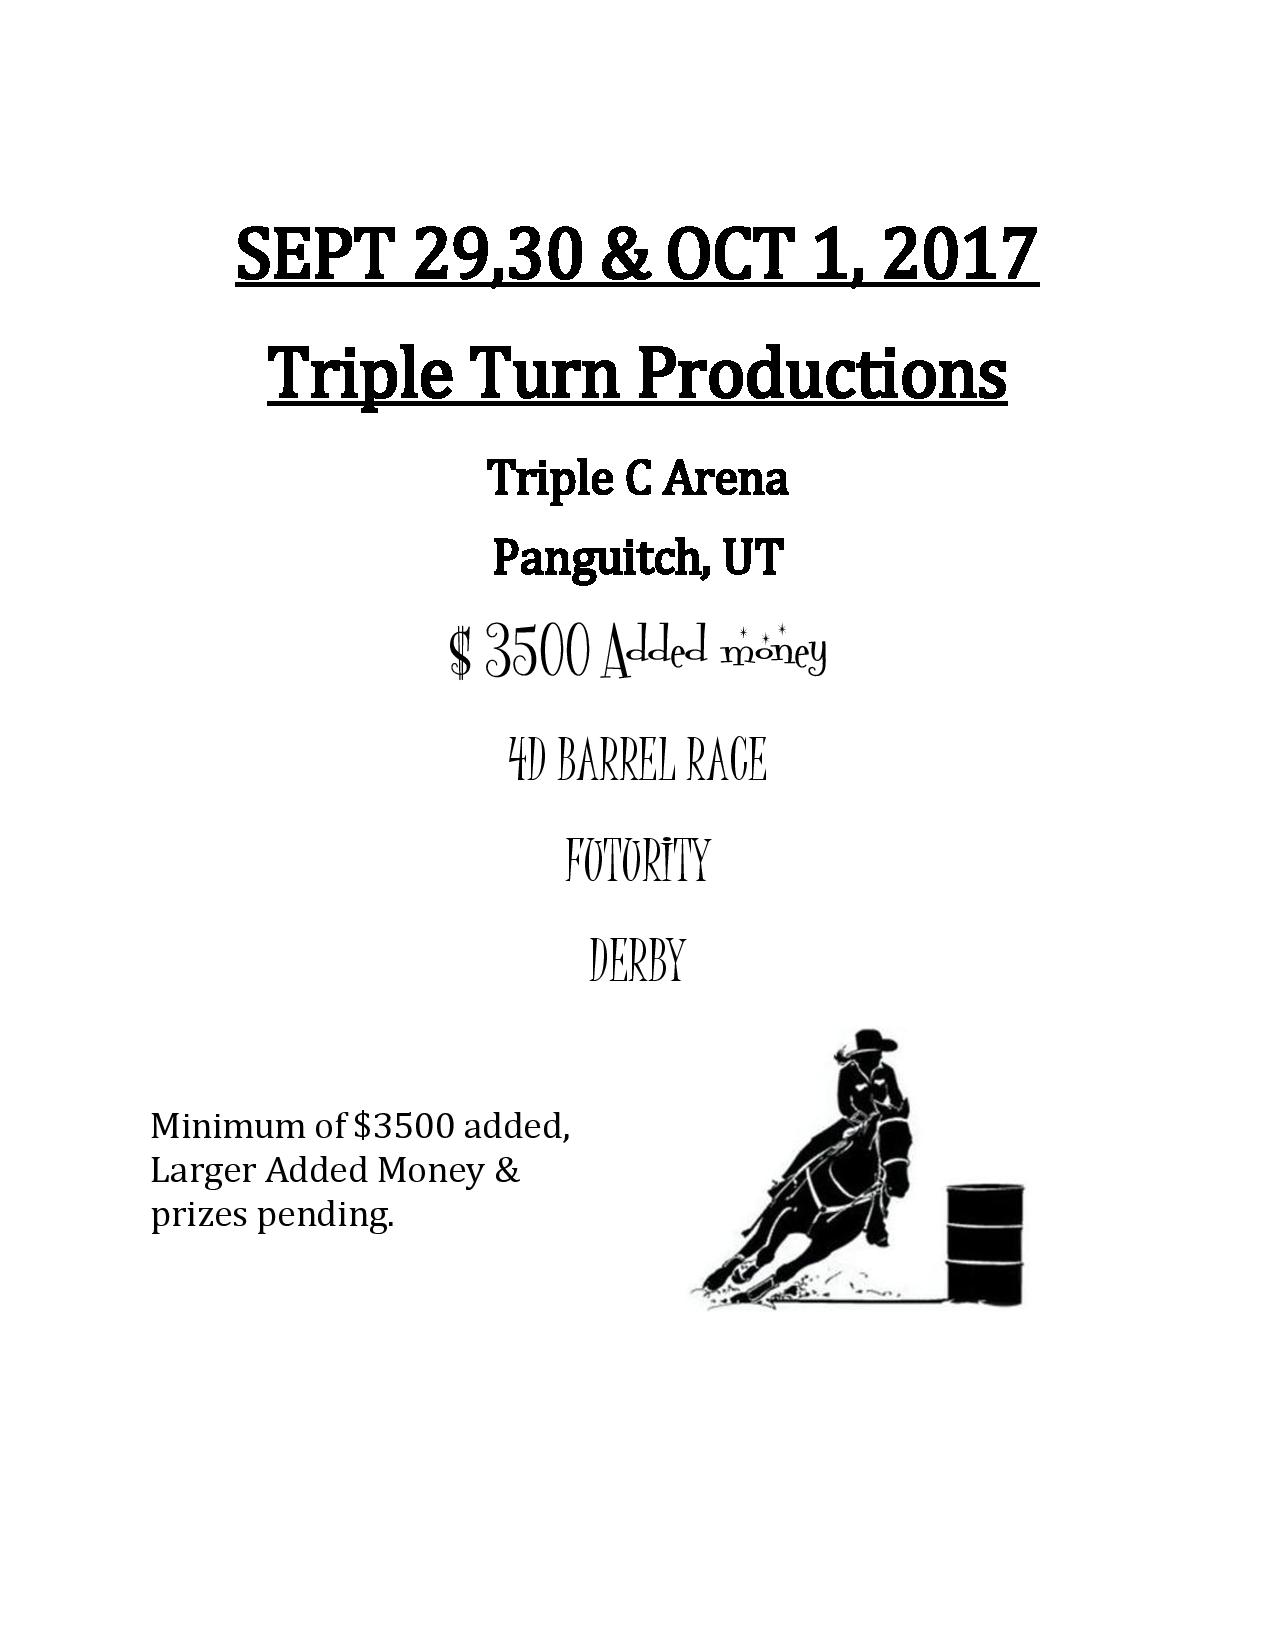 Triple Turn Productions Barrel Race and Futurity/Derby @ Triple C Arena